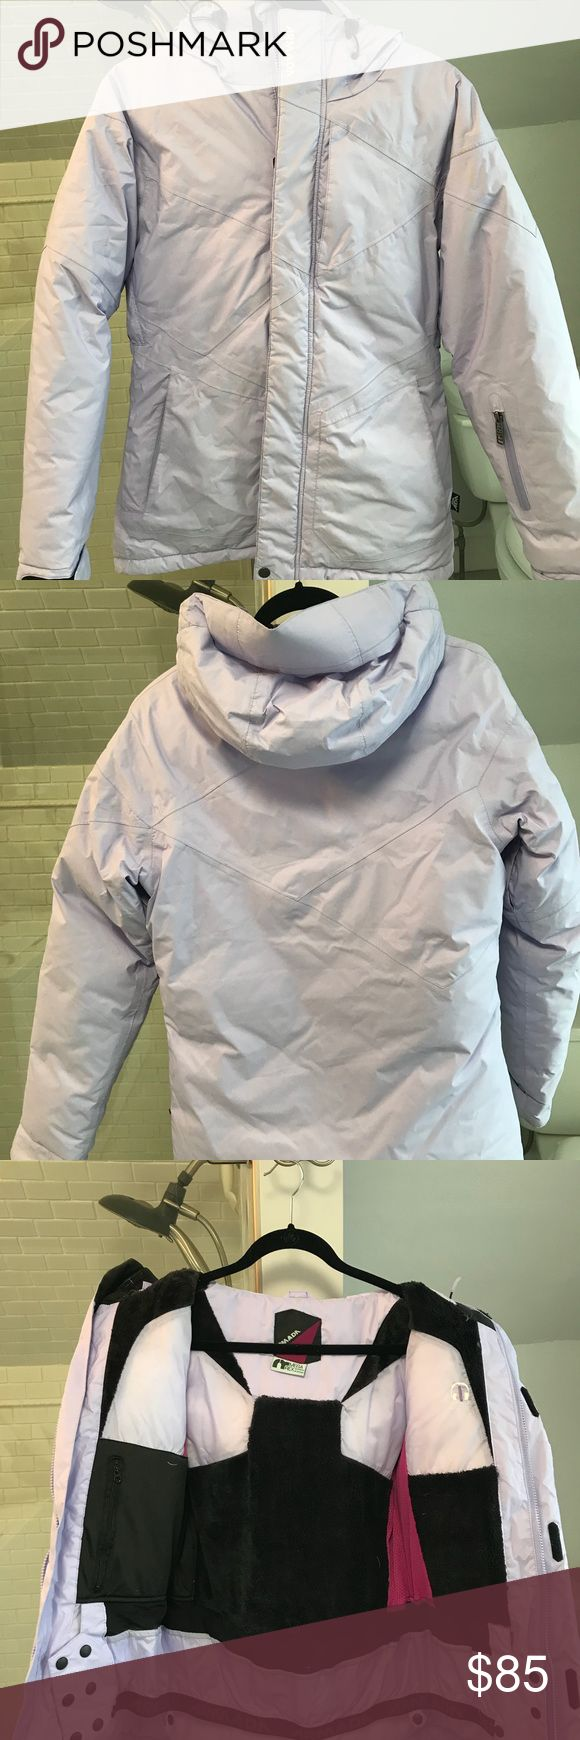 Armada women's ski jacket. Lavender armada down ski jacket with snow skirt. Women's size small. Gently used with some discoloration on the sleeves. armada Jackets & Coats Puffers